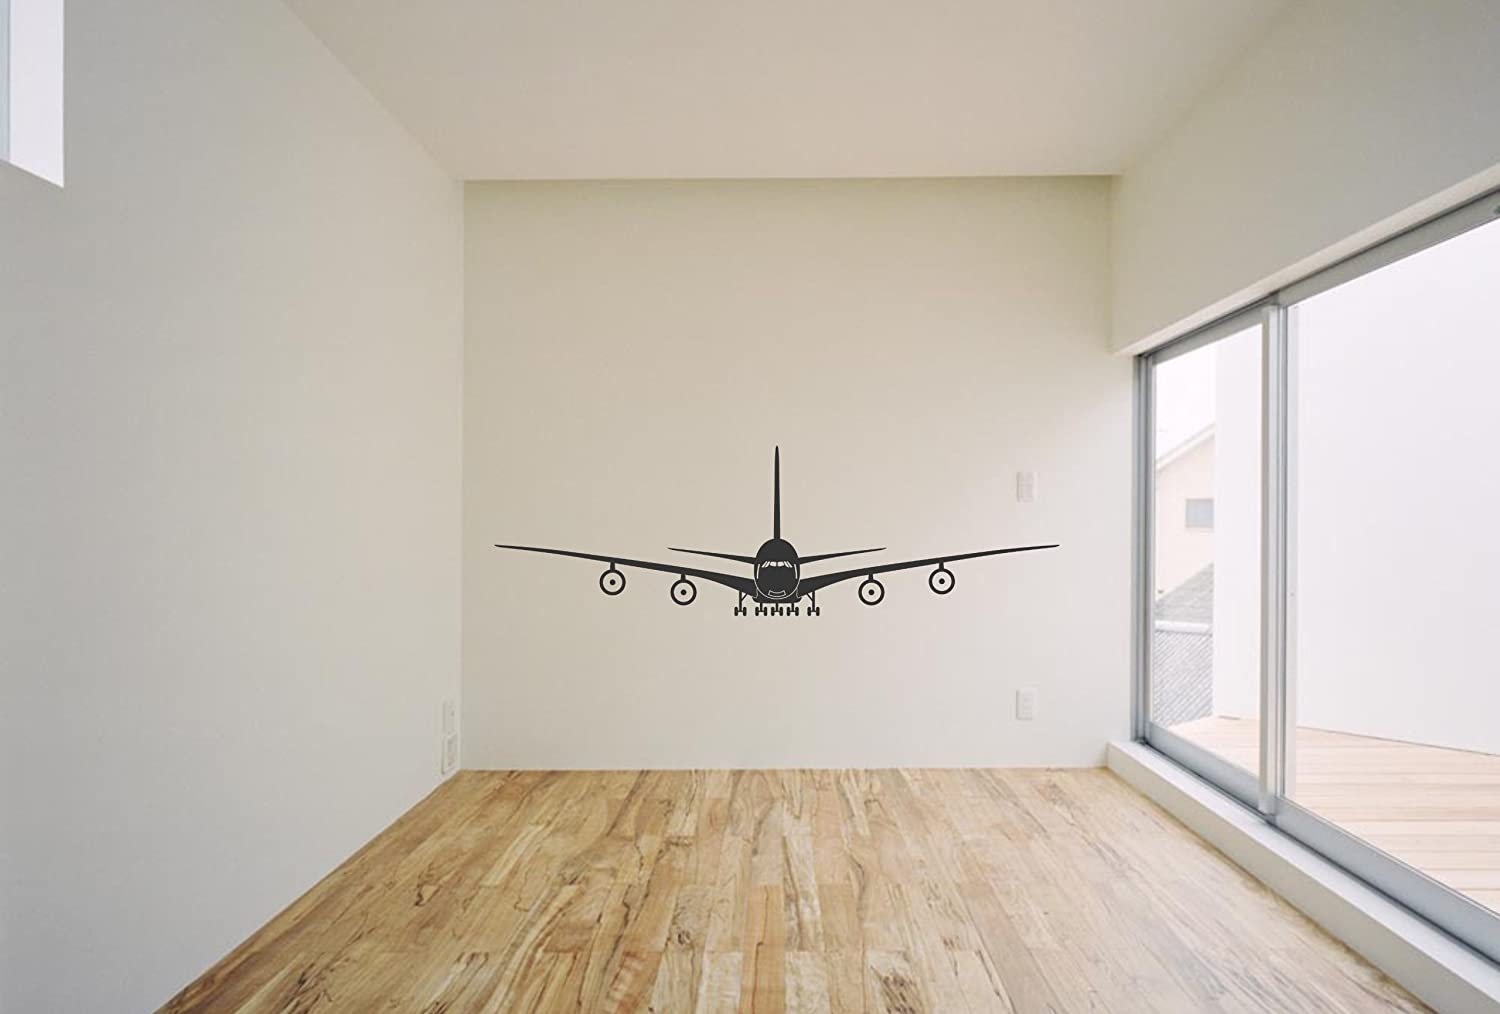 Airplane decals for walls